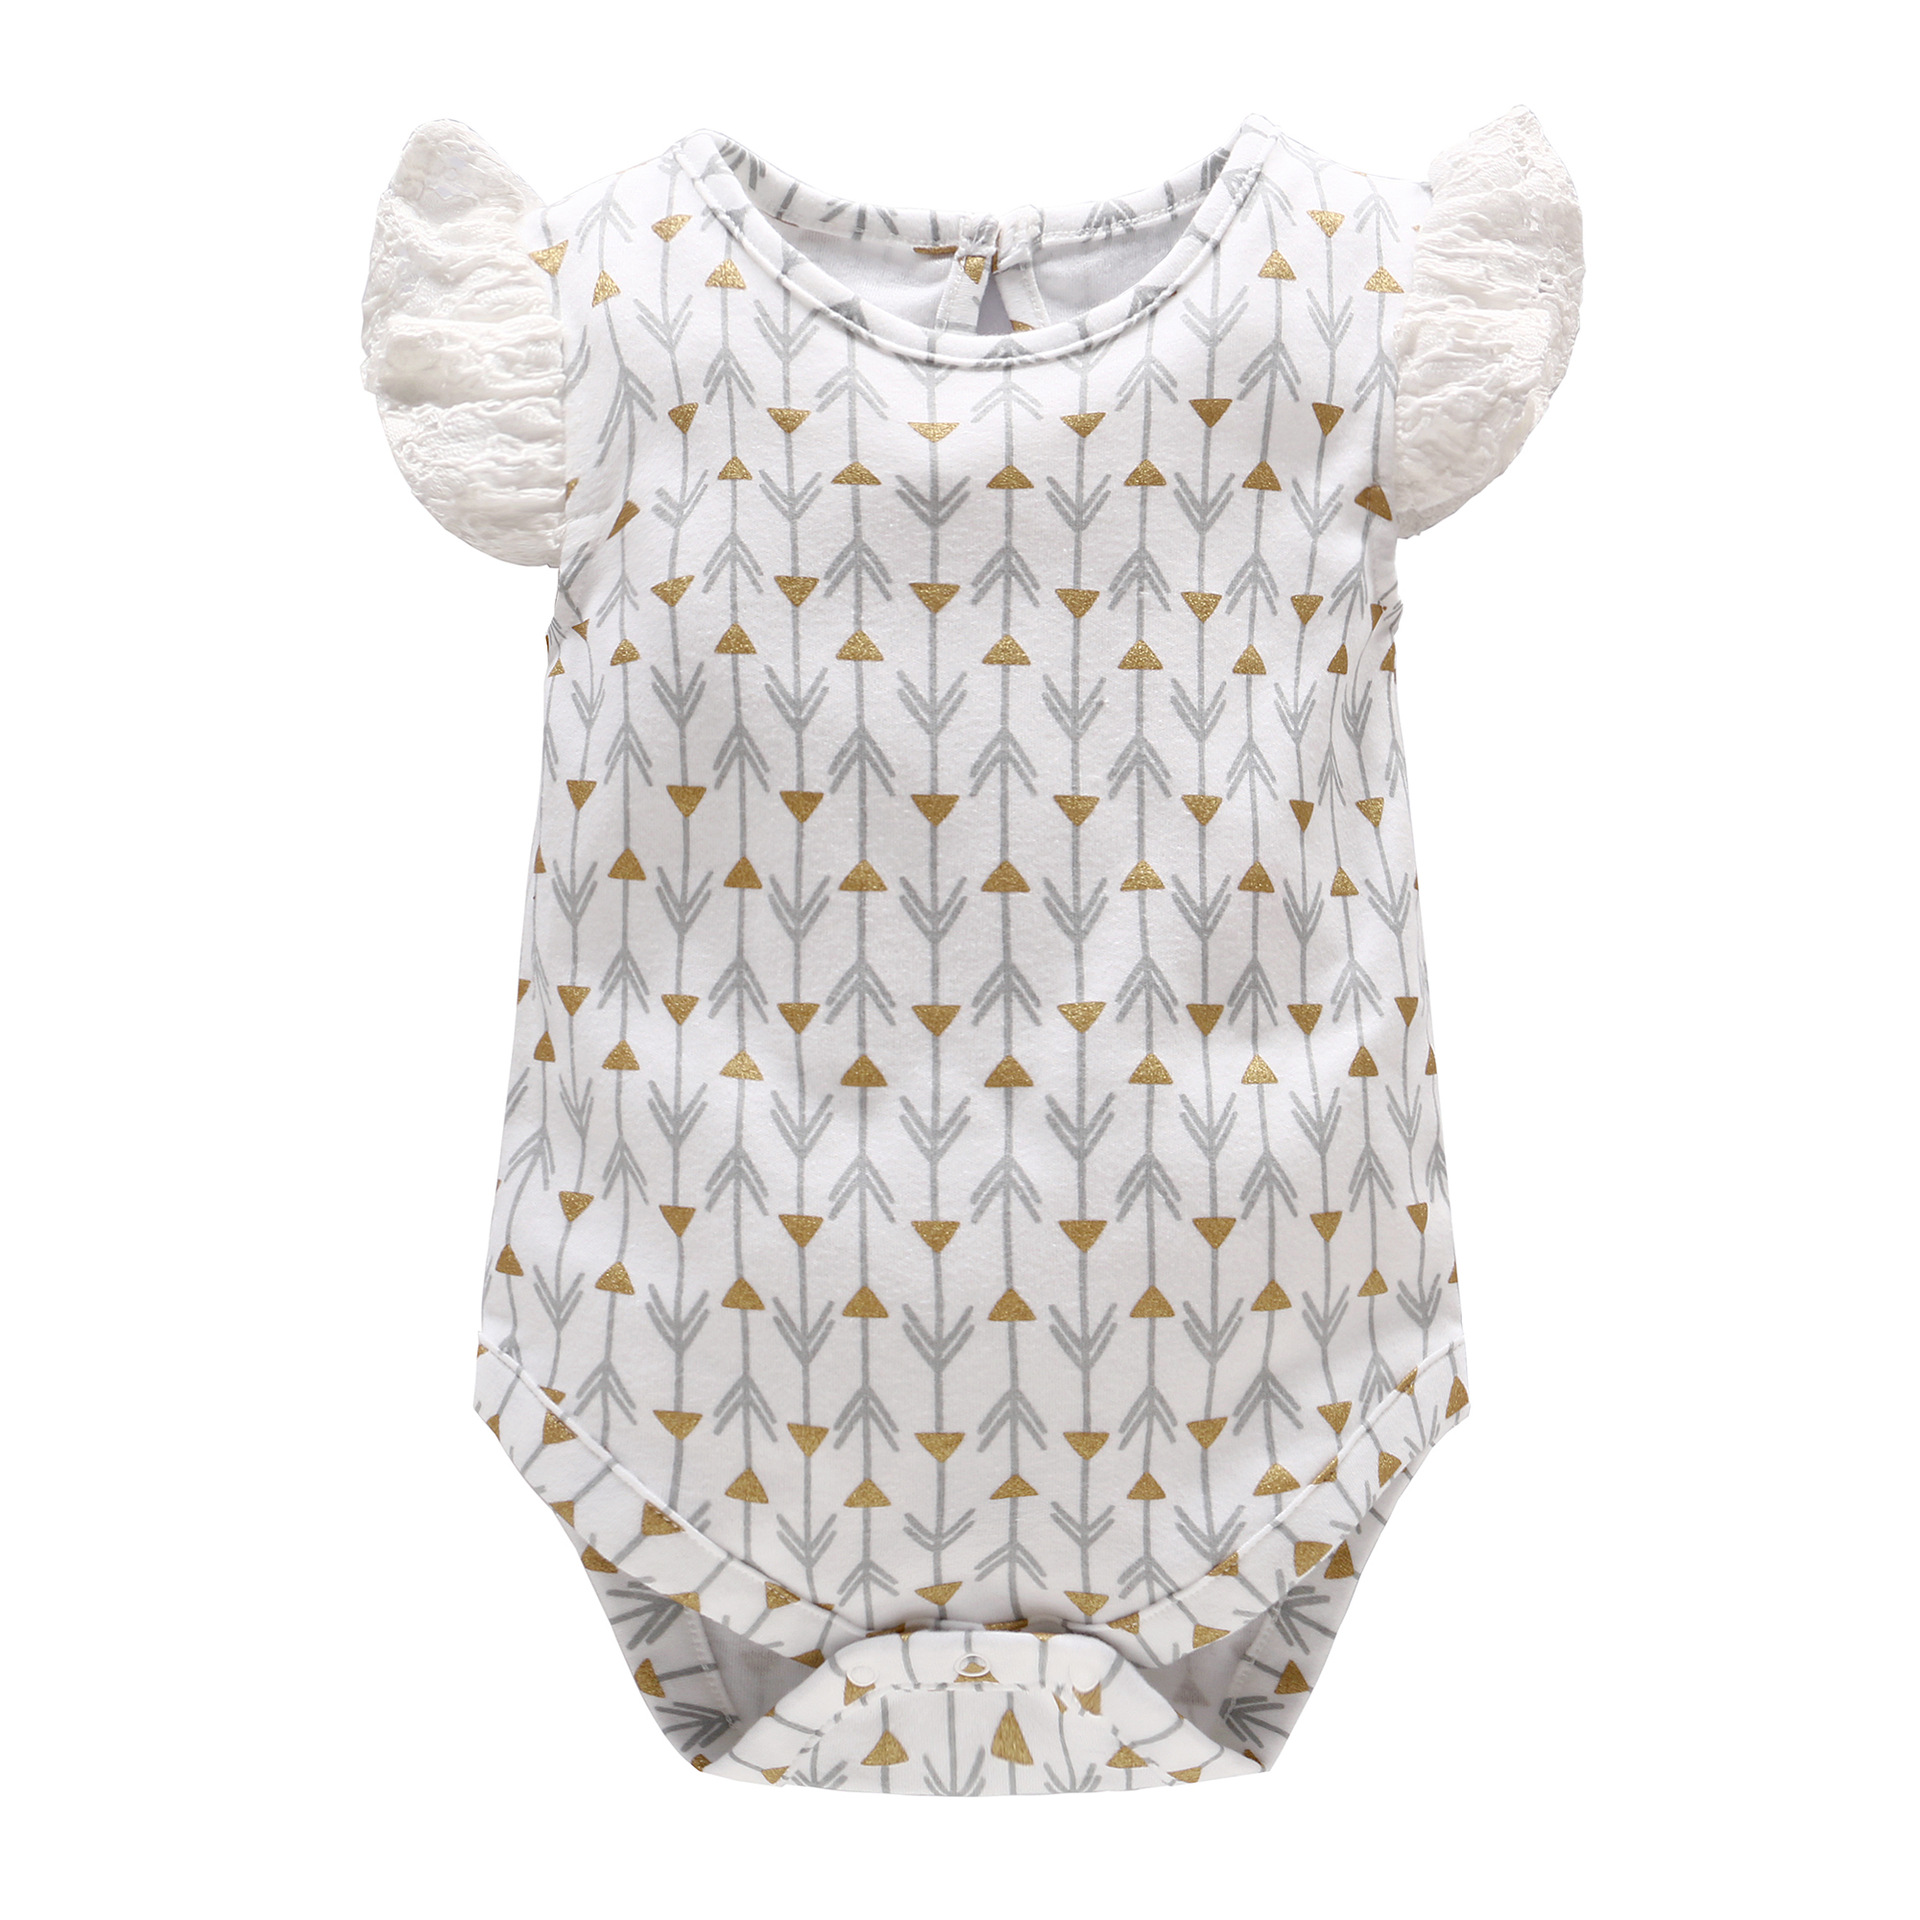 fe295f9da 2018 Baby Girl Clothes New Cotton Summer Baby Girls Sleeveless Lace Bodysuits  Baby Gold Stamping Outfits